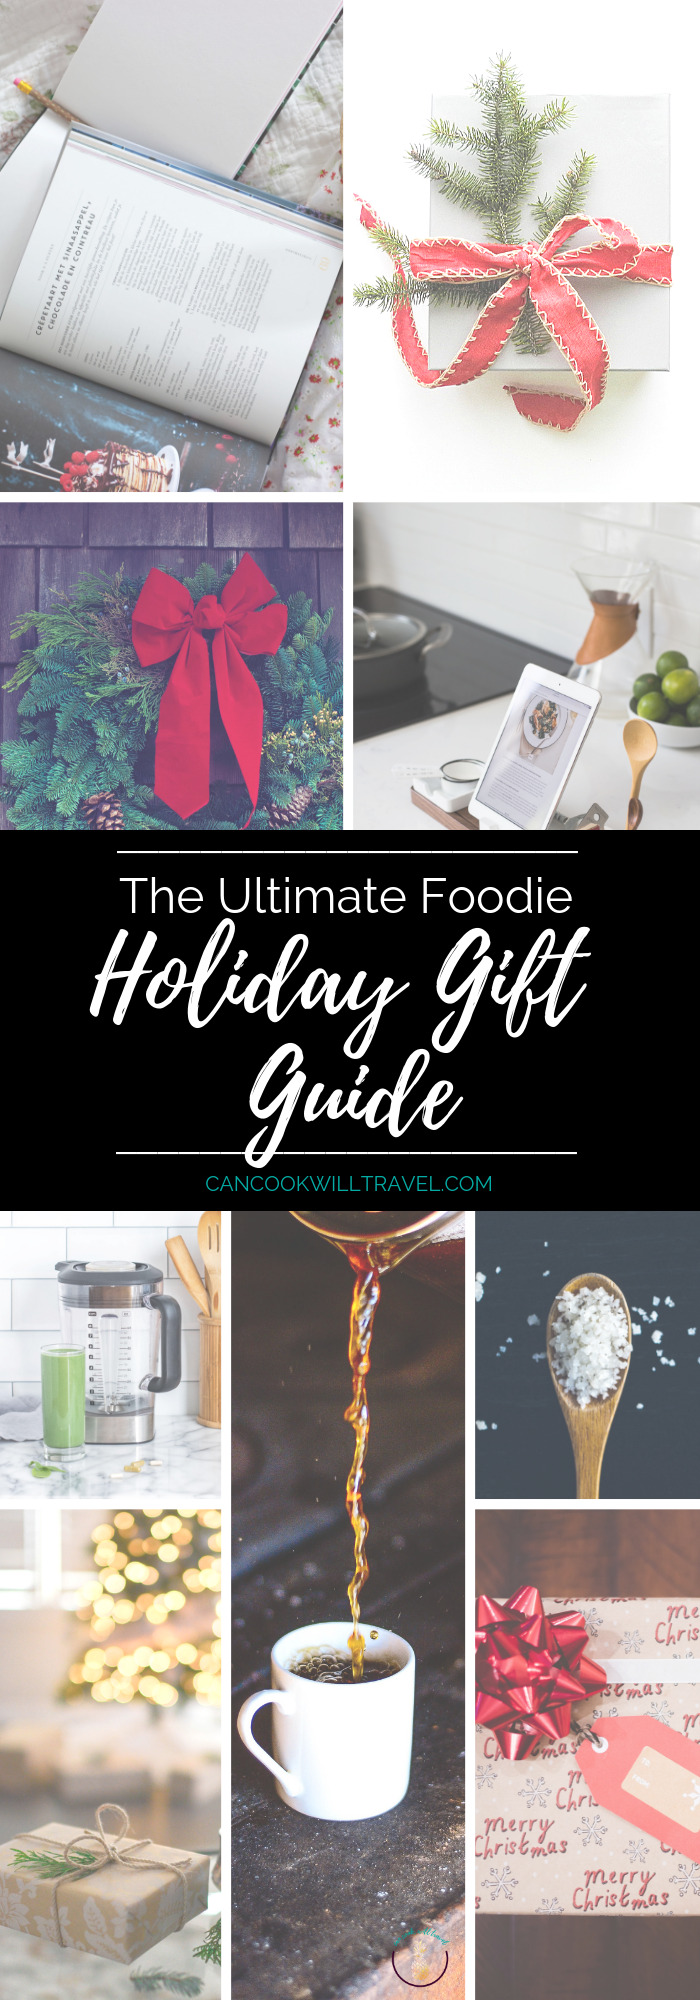 Holiday Gifts for Foodies_Tall